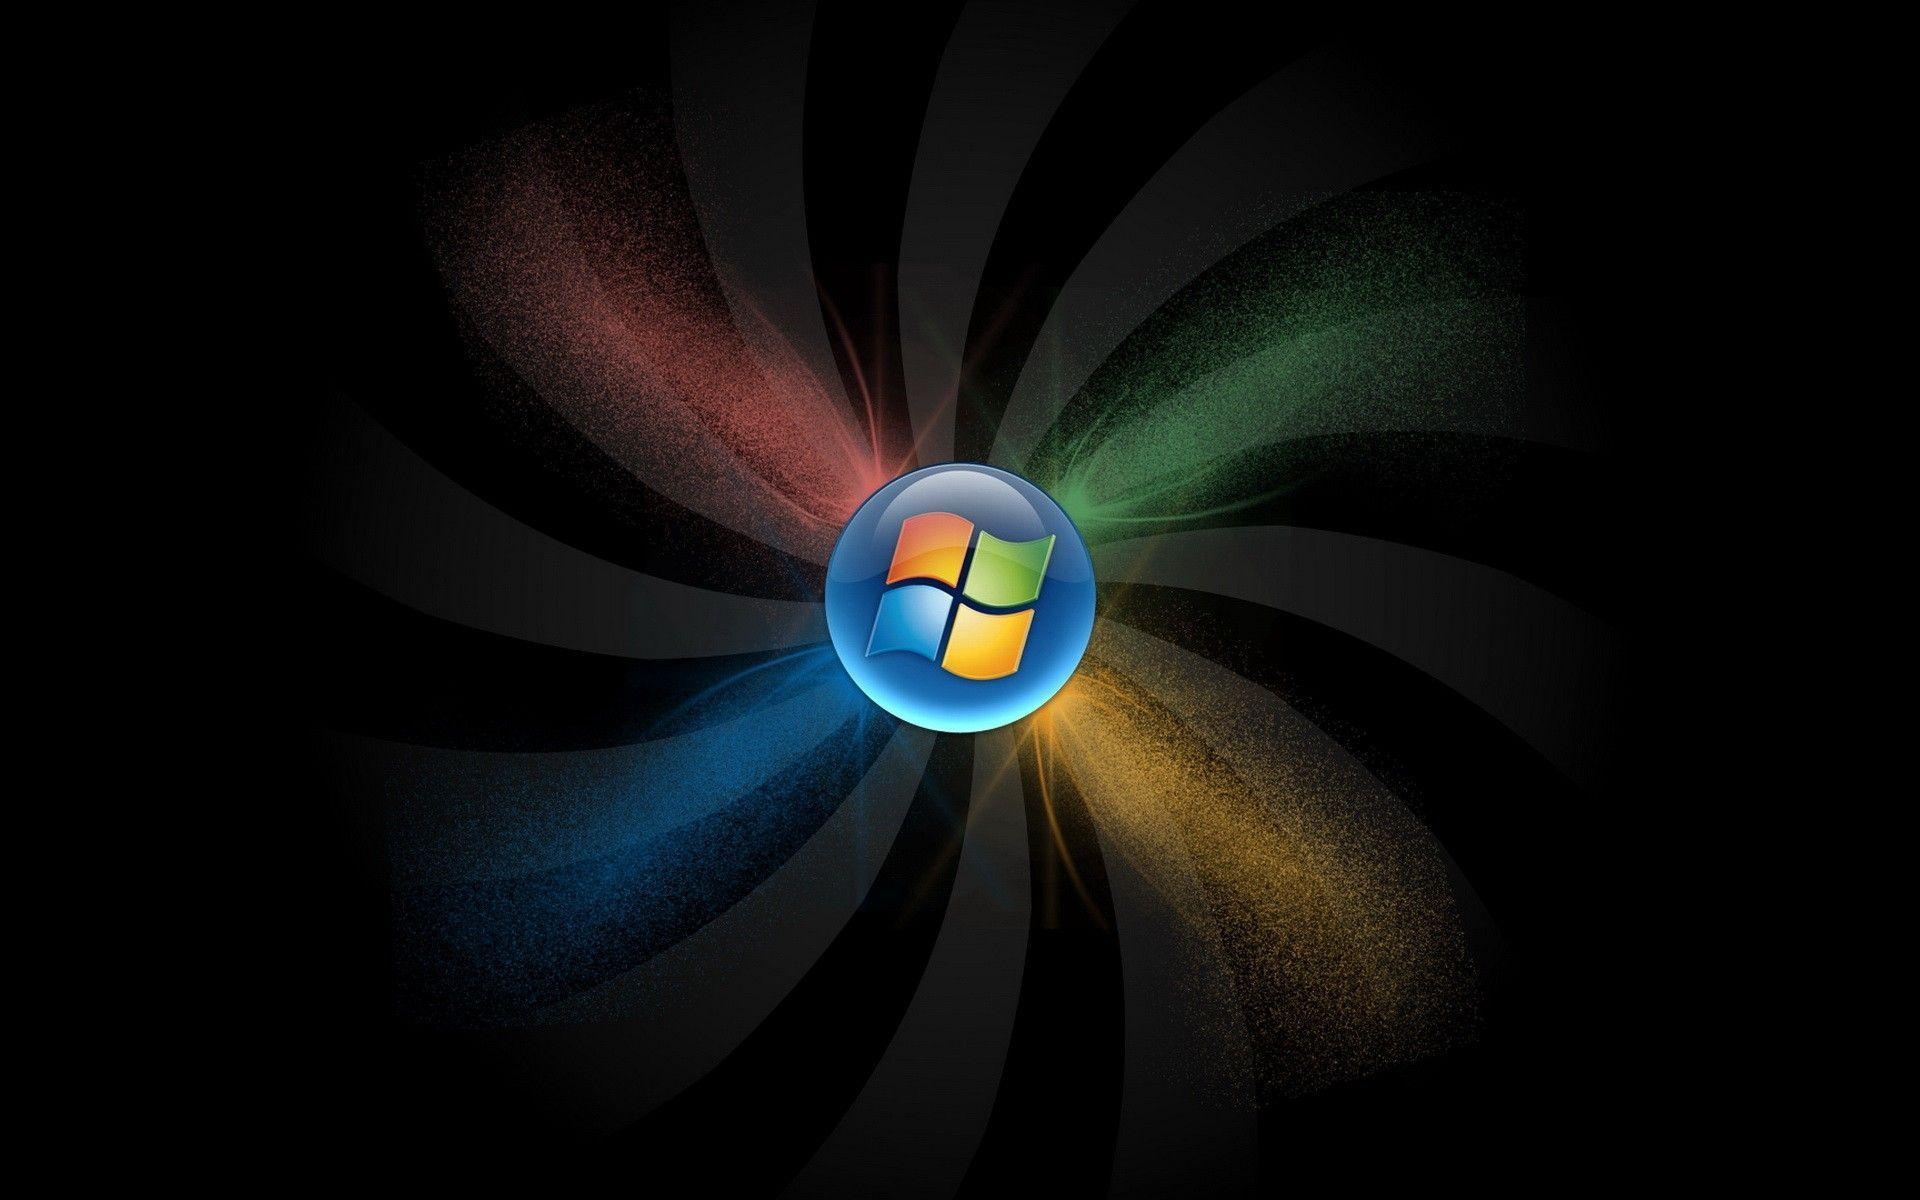 Microsoft Wallpaper, wallpaper, Microsoft Wallpapers hd wallpapers